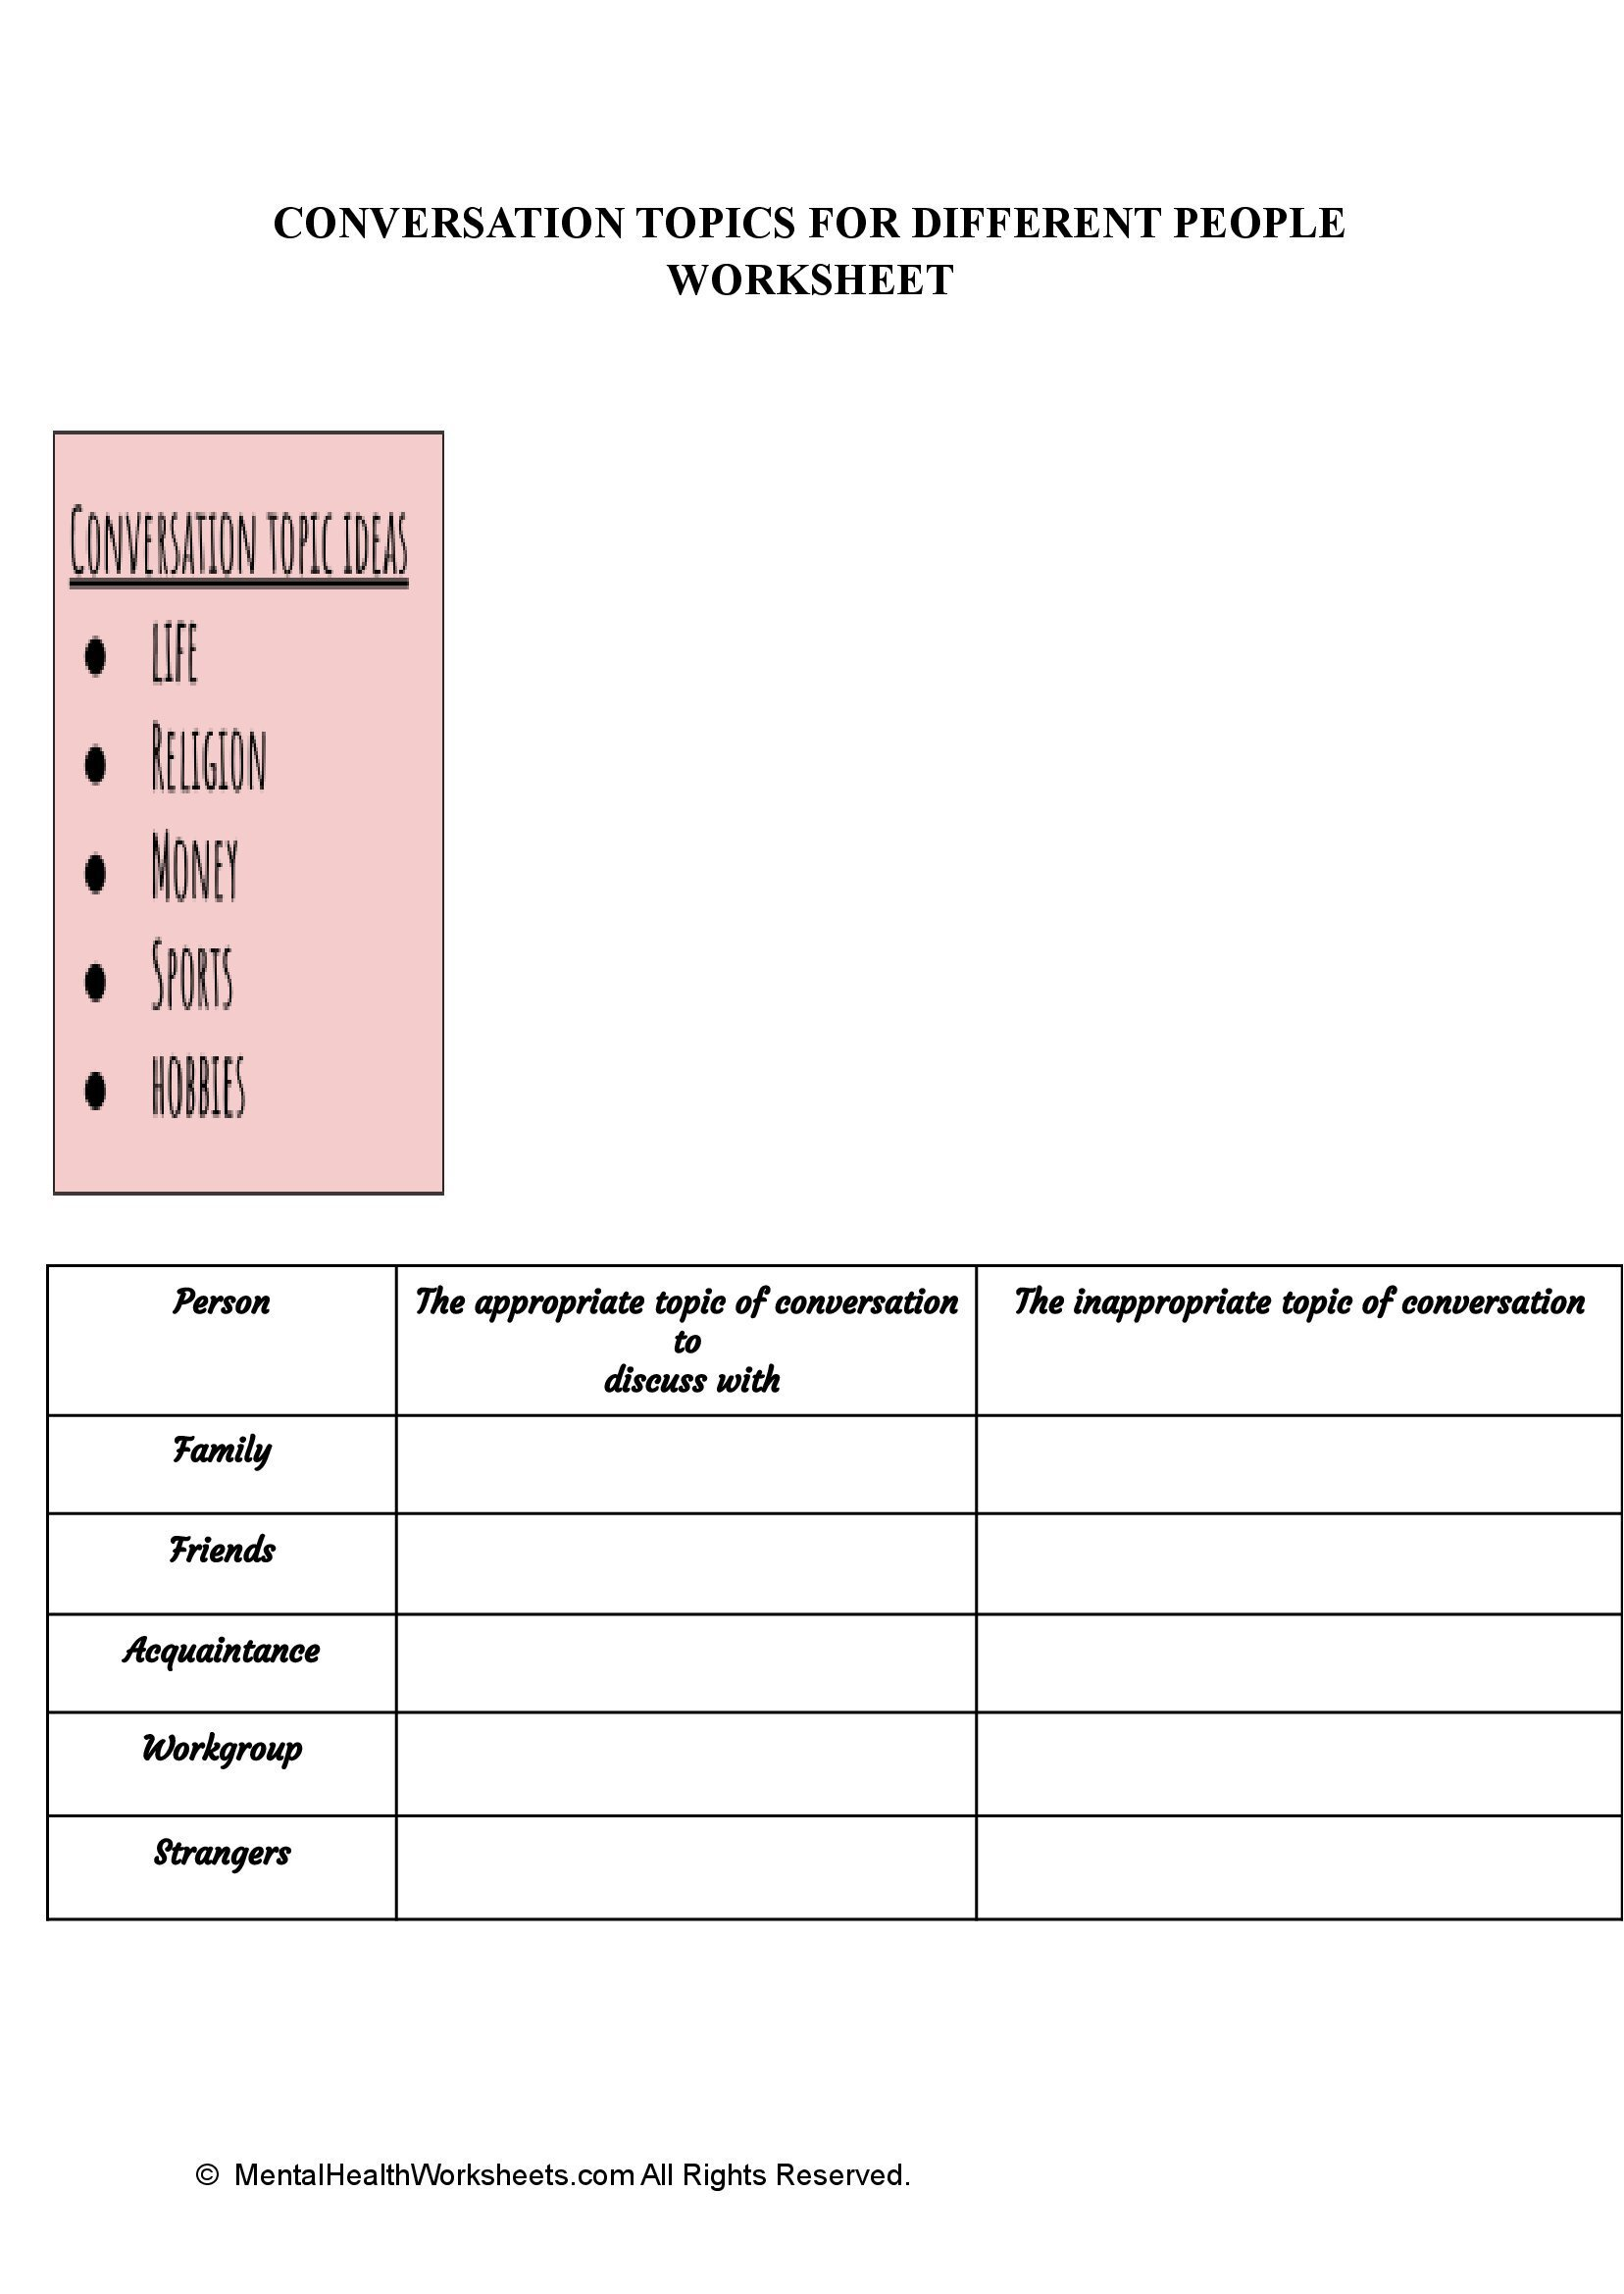 CONVERSATION TOPICS FOR DIFFERENT PEOPLE WORKSHEET